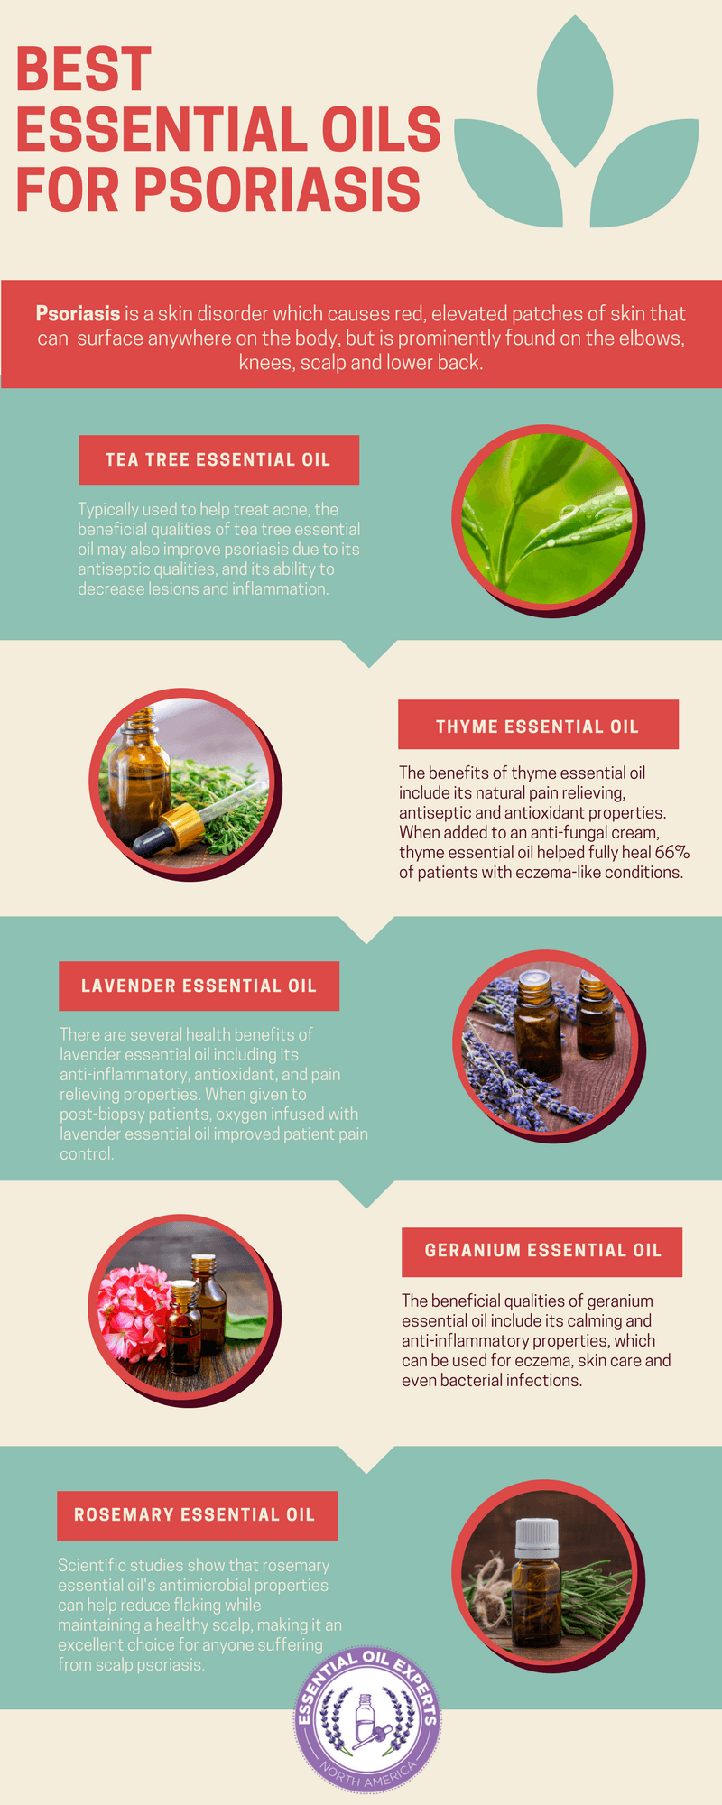 tea tree oil psoriasis, what essential oils is good for psoriasis